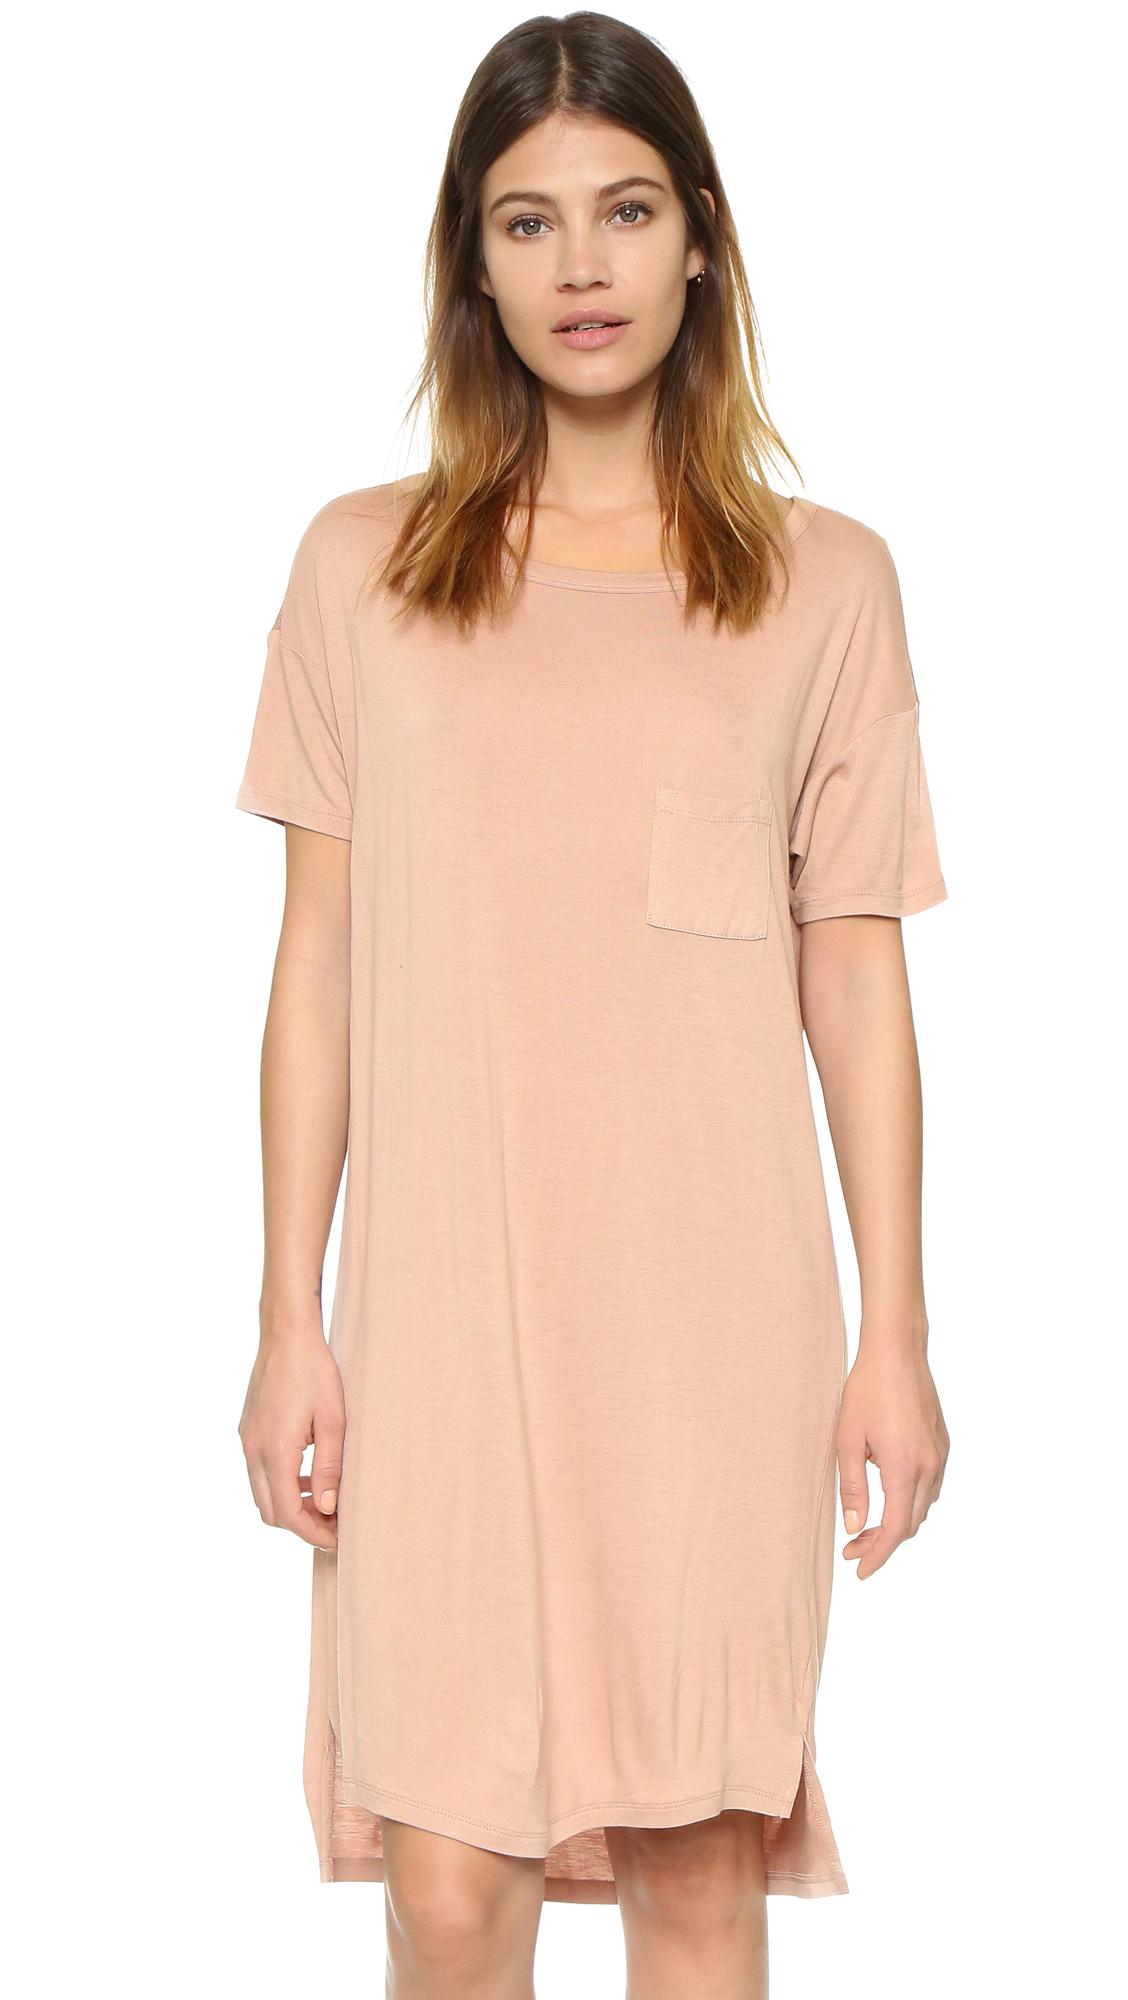 lyst t by alexander wang classic boat neck dress in pink. Black Bedroom Furniture Sets. Home Design Ideas